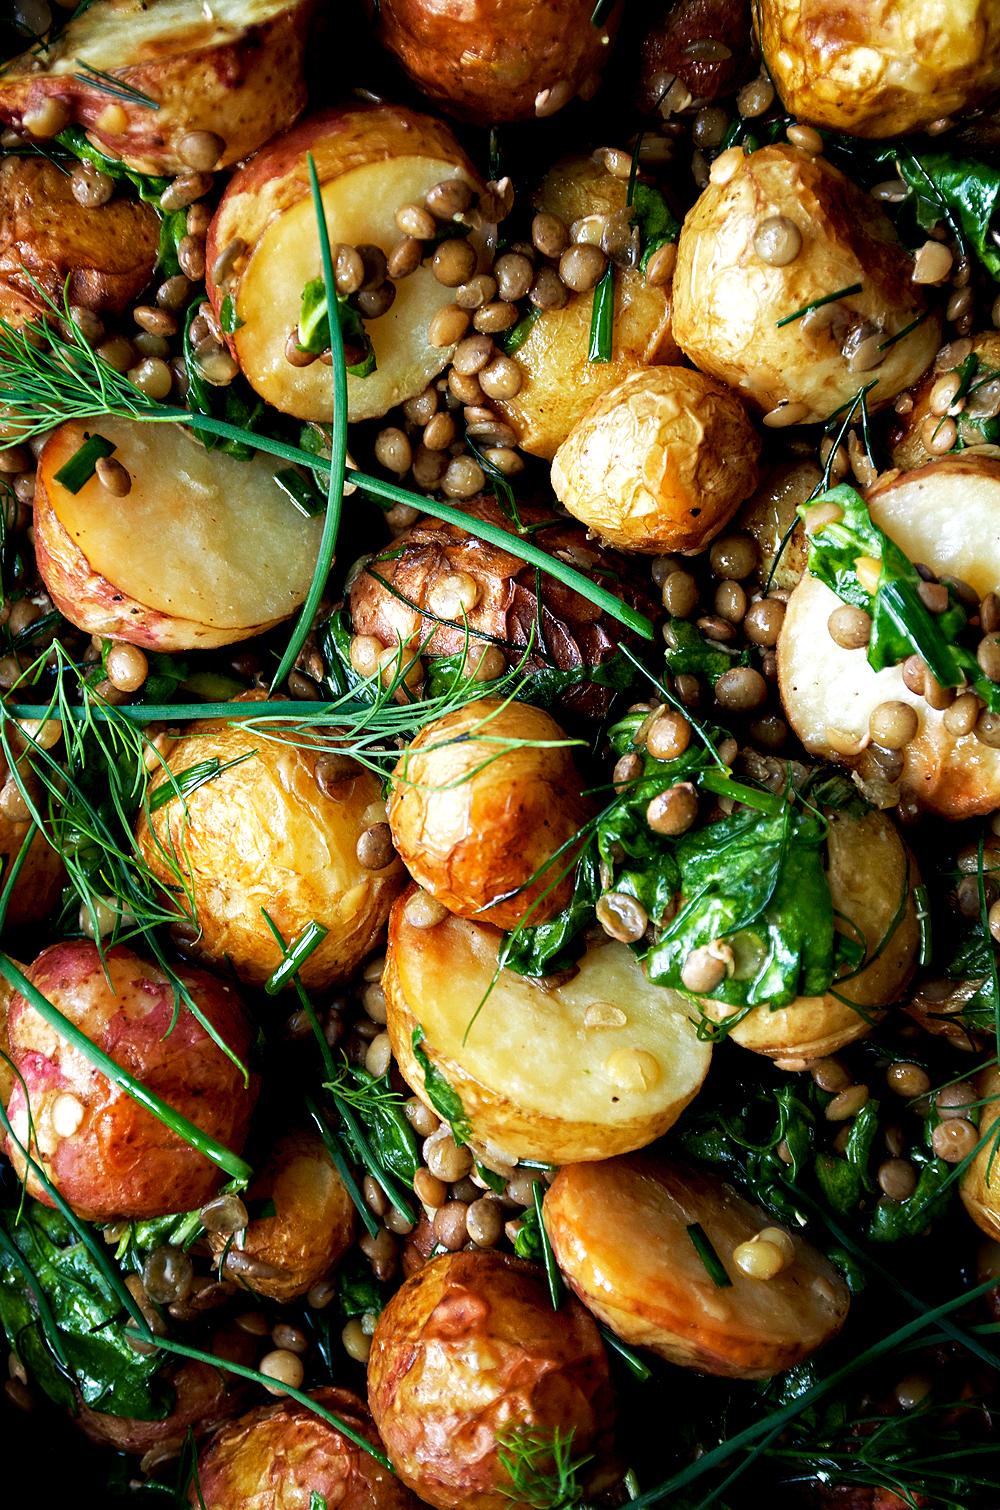 Roasted New Potato Salad with Lentils + Herb Dressing | occasionallyeggs.com